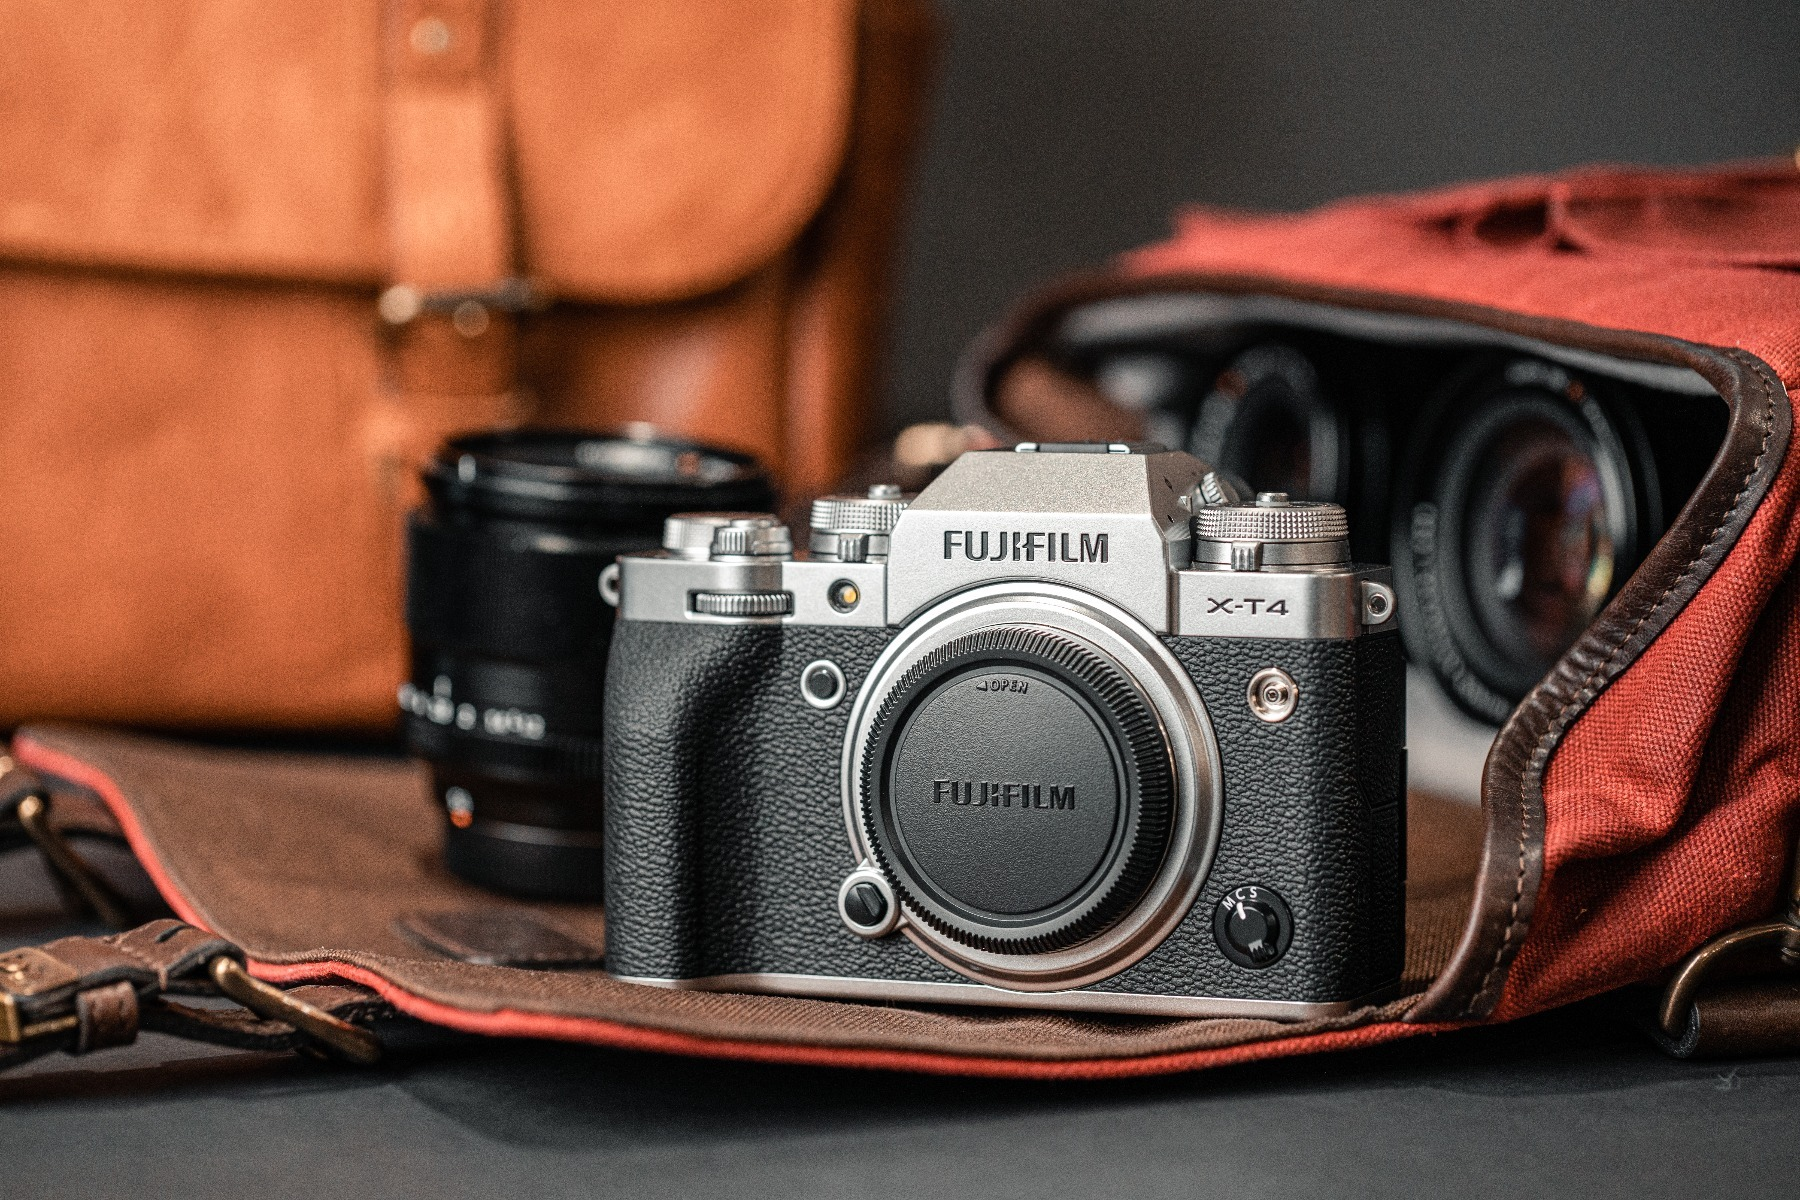 The All New Fujifilm X-T4 is Here!